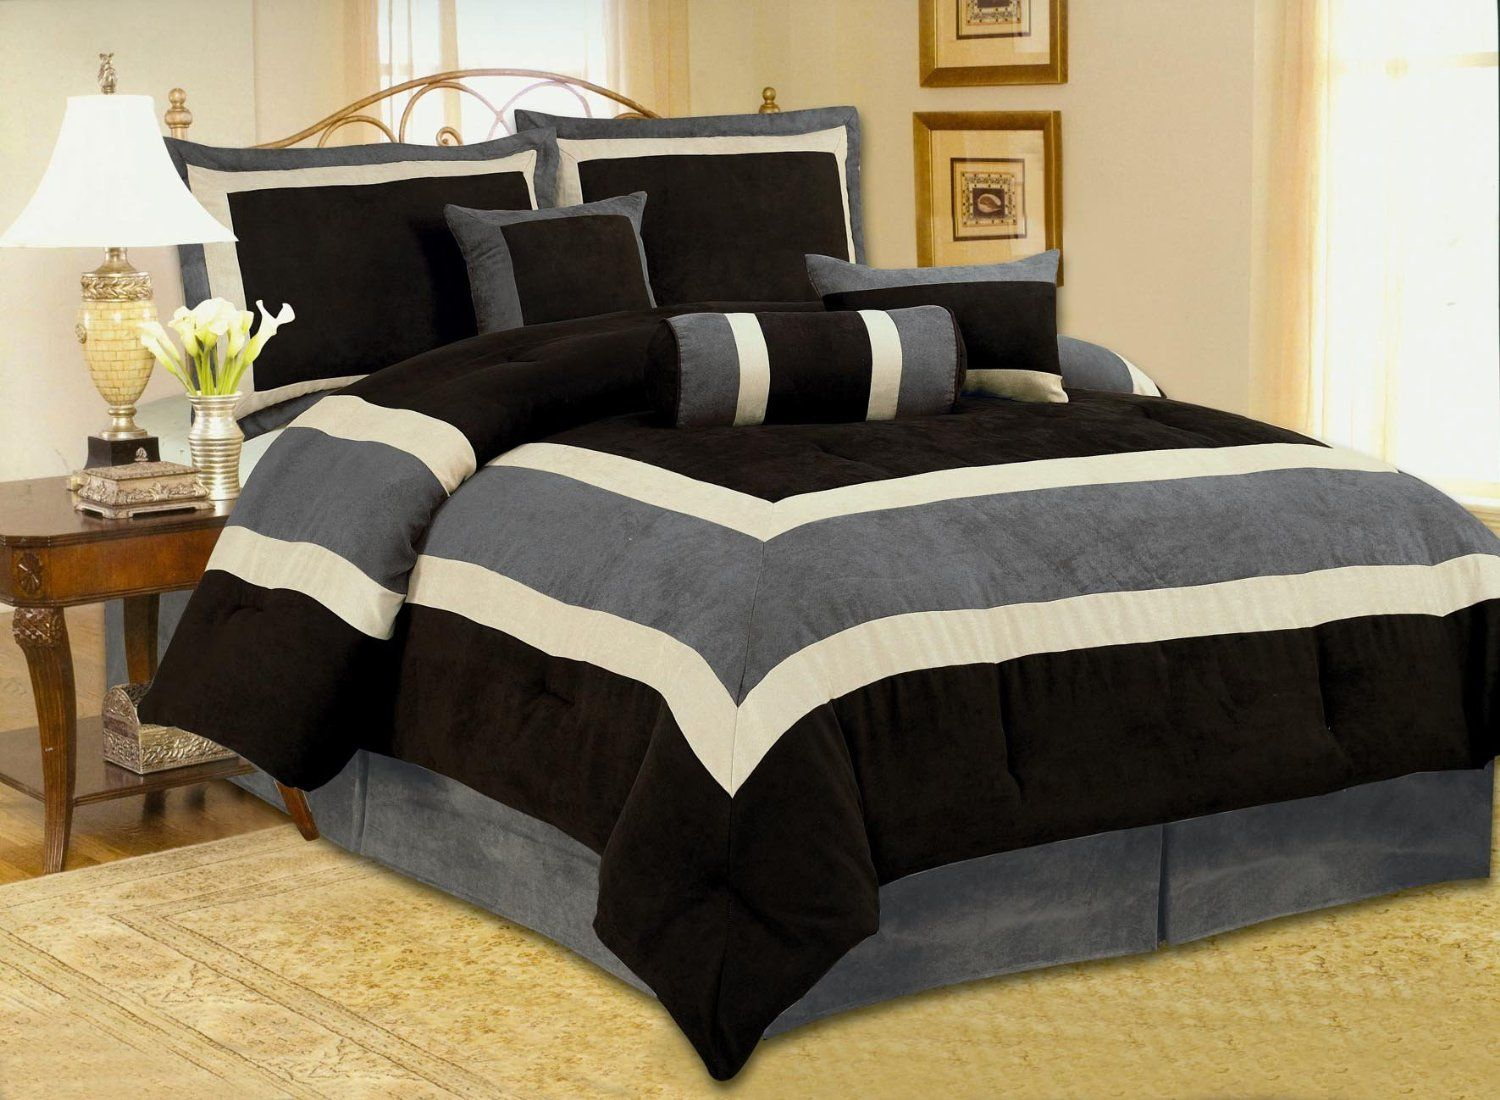 Amazon Com High Quality Micro Suede Comforter Set Bedding In A